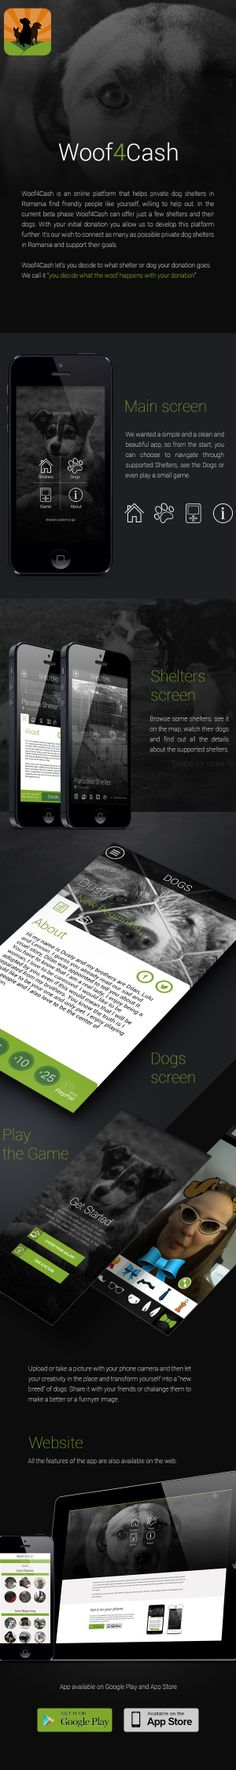 Woof4Cash #Mobile and web #App. More at www.woof4cash.com